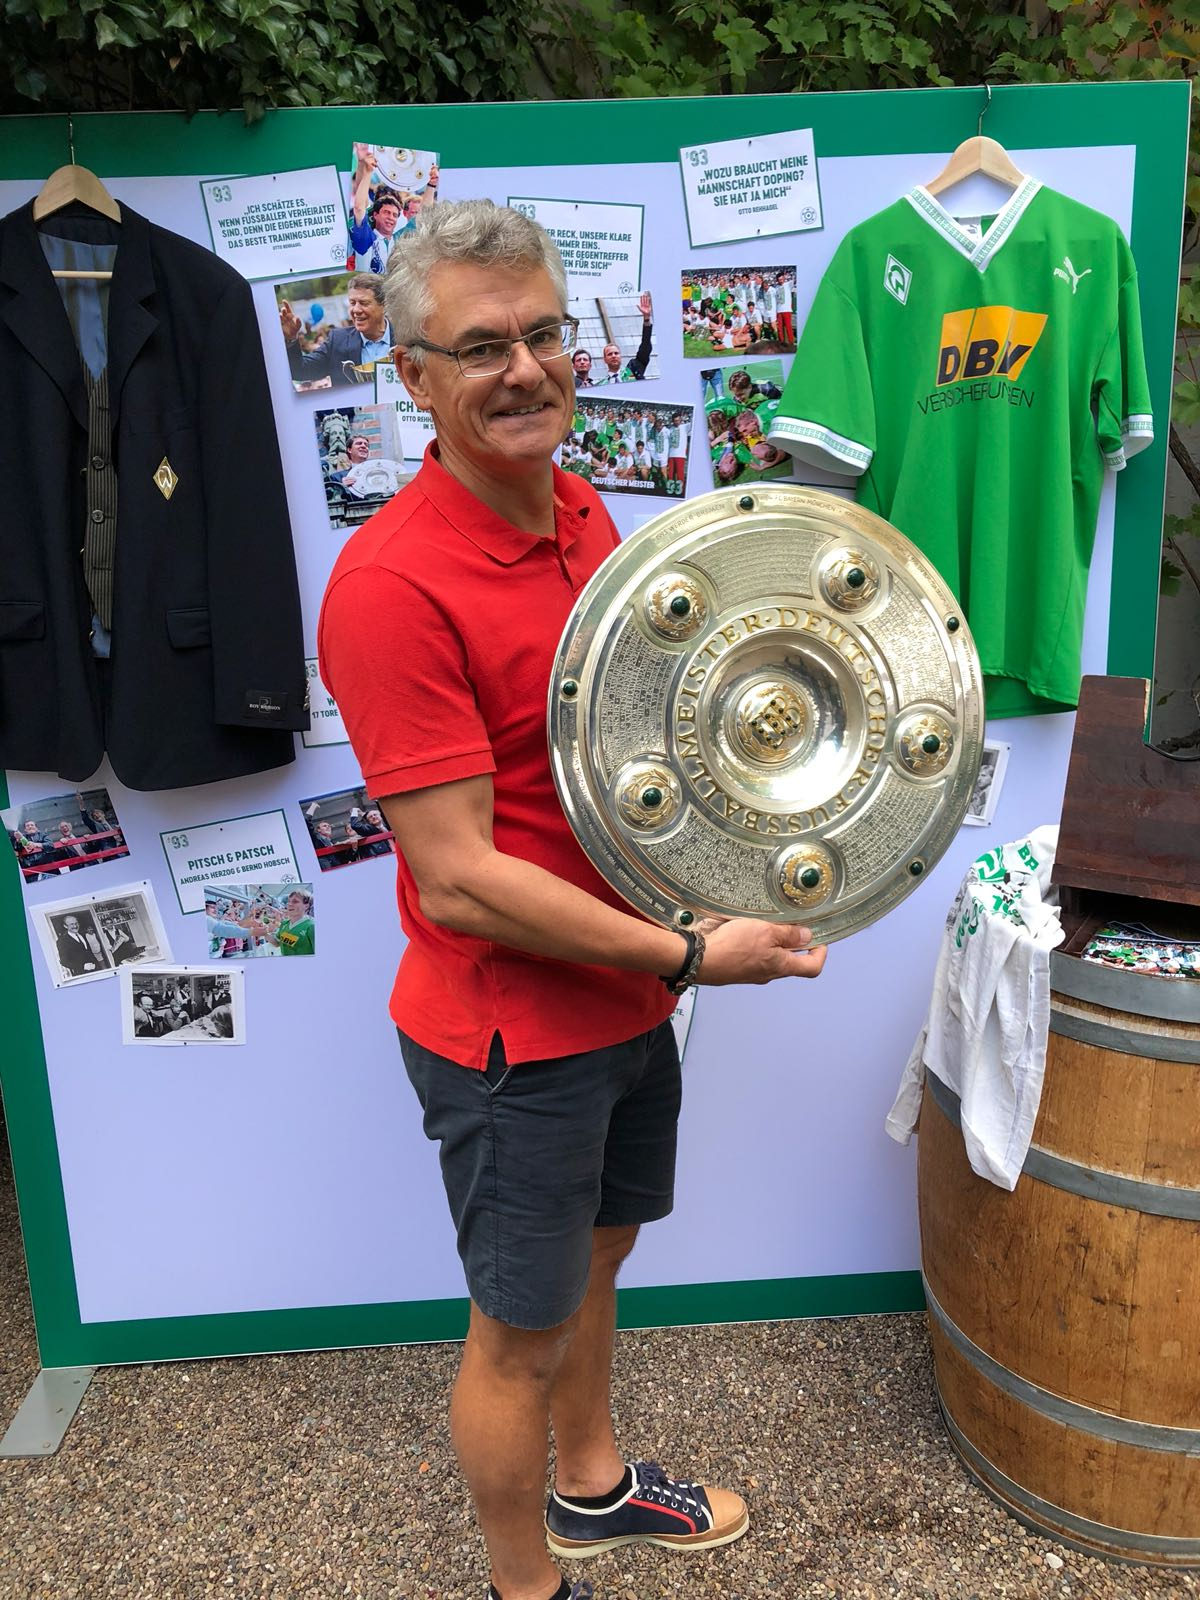 Celebrating the 25th anniversary of winning the Bundesliga 1993